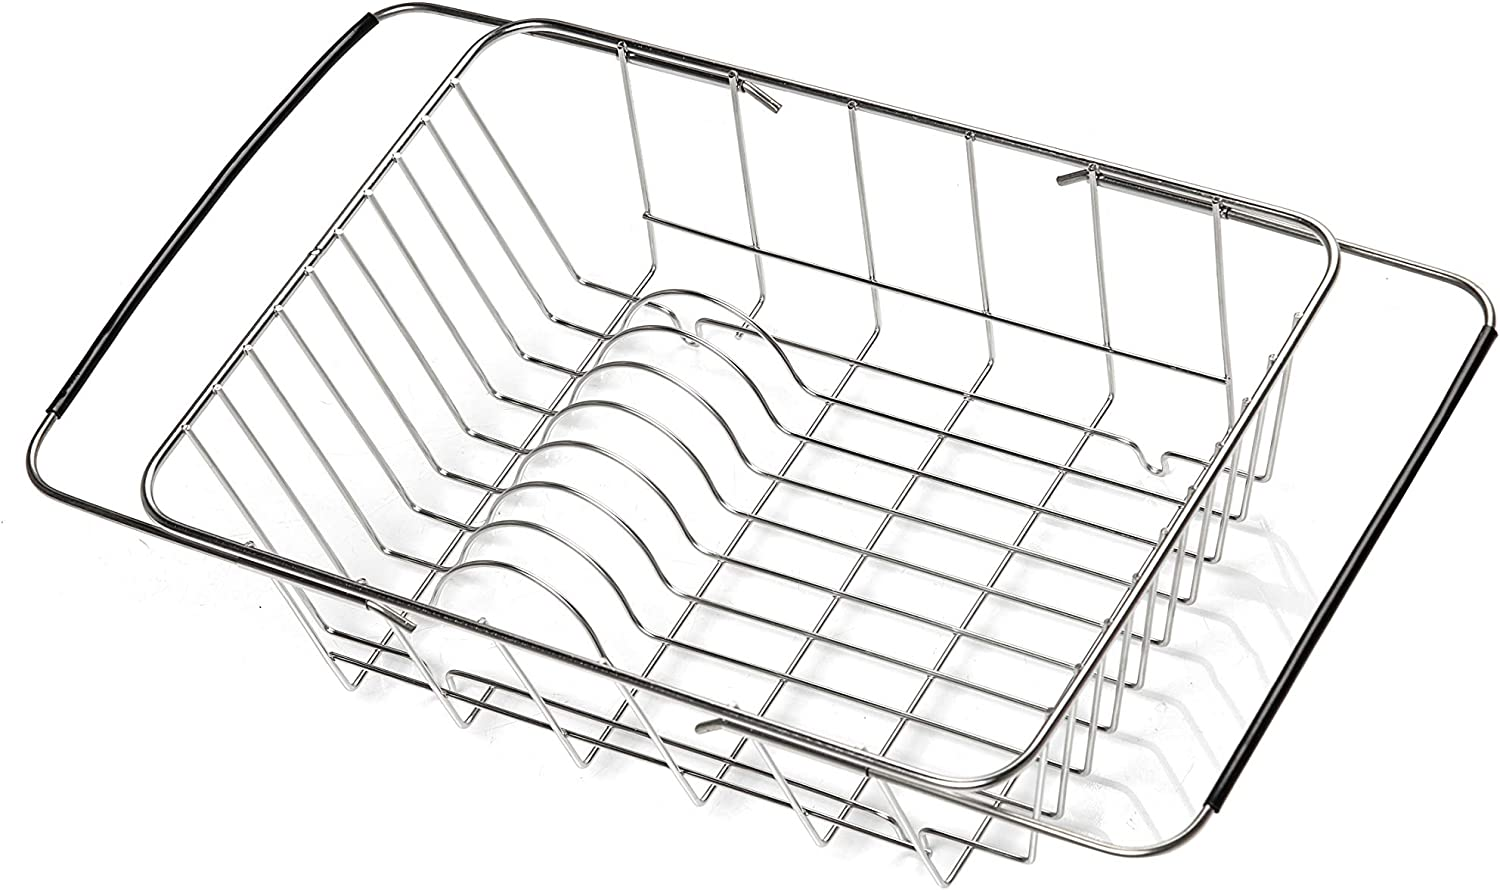 Expandable Dish Drying Rack, Dish Rack in Sink or On Counter, Dish Drainer Stainless Steel